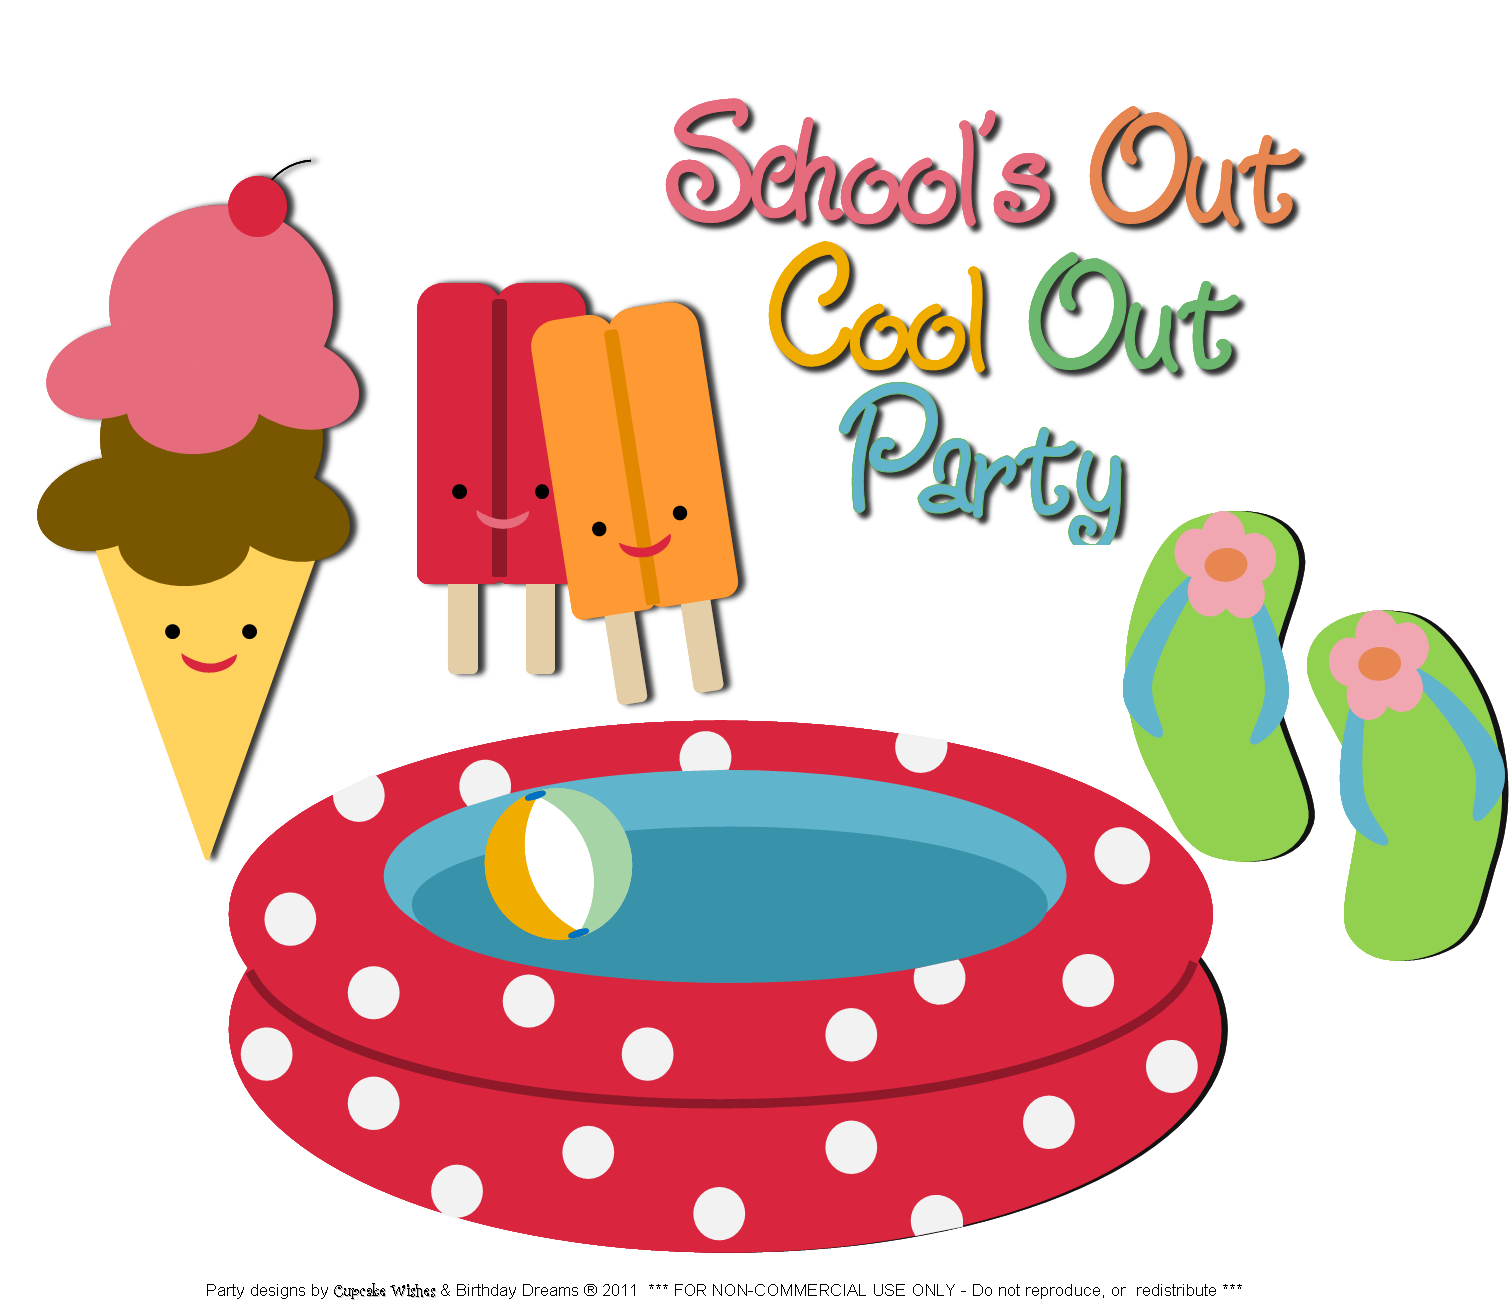 School party clipart banner free library Schools Out Party Clipart banner free library